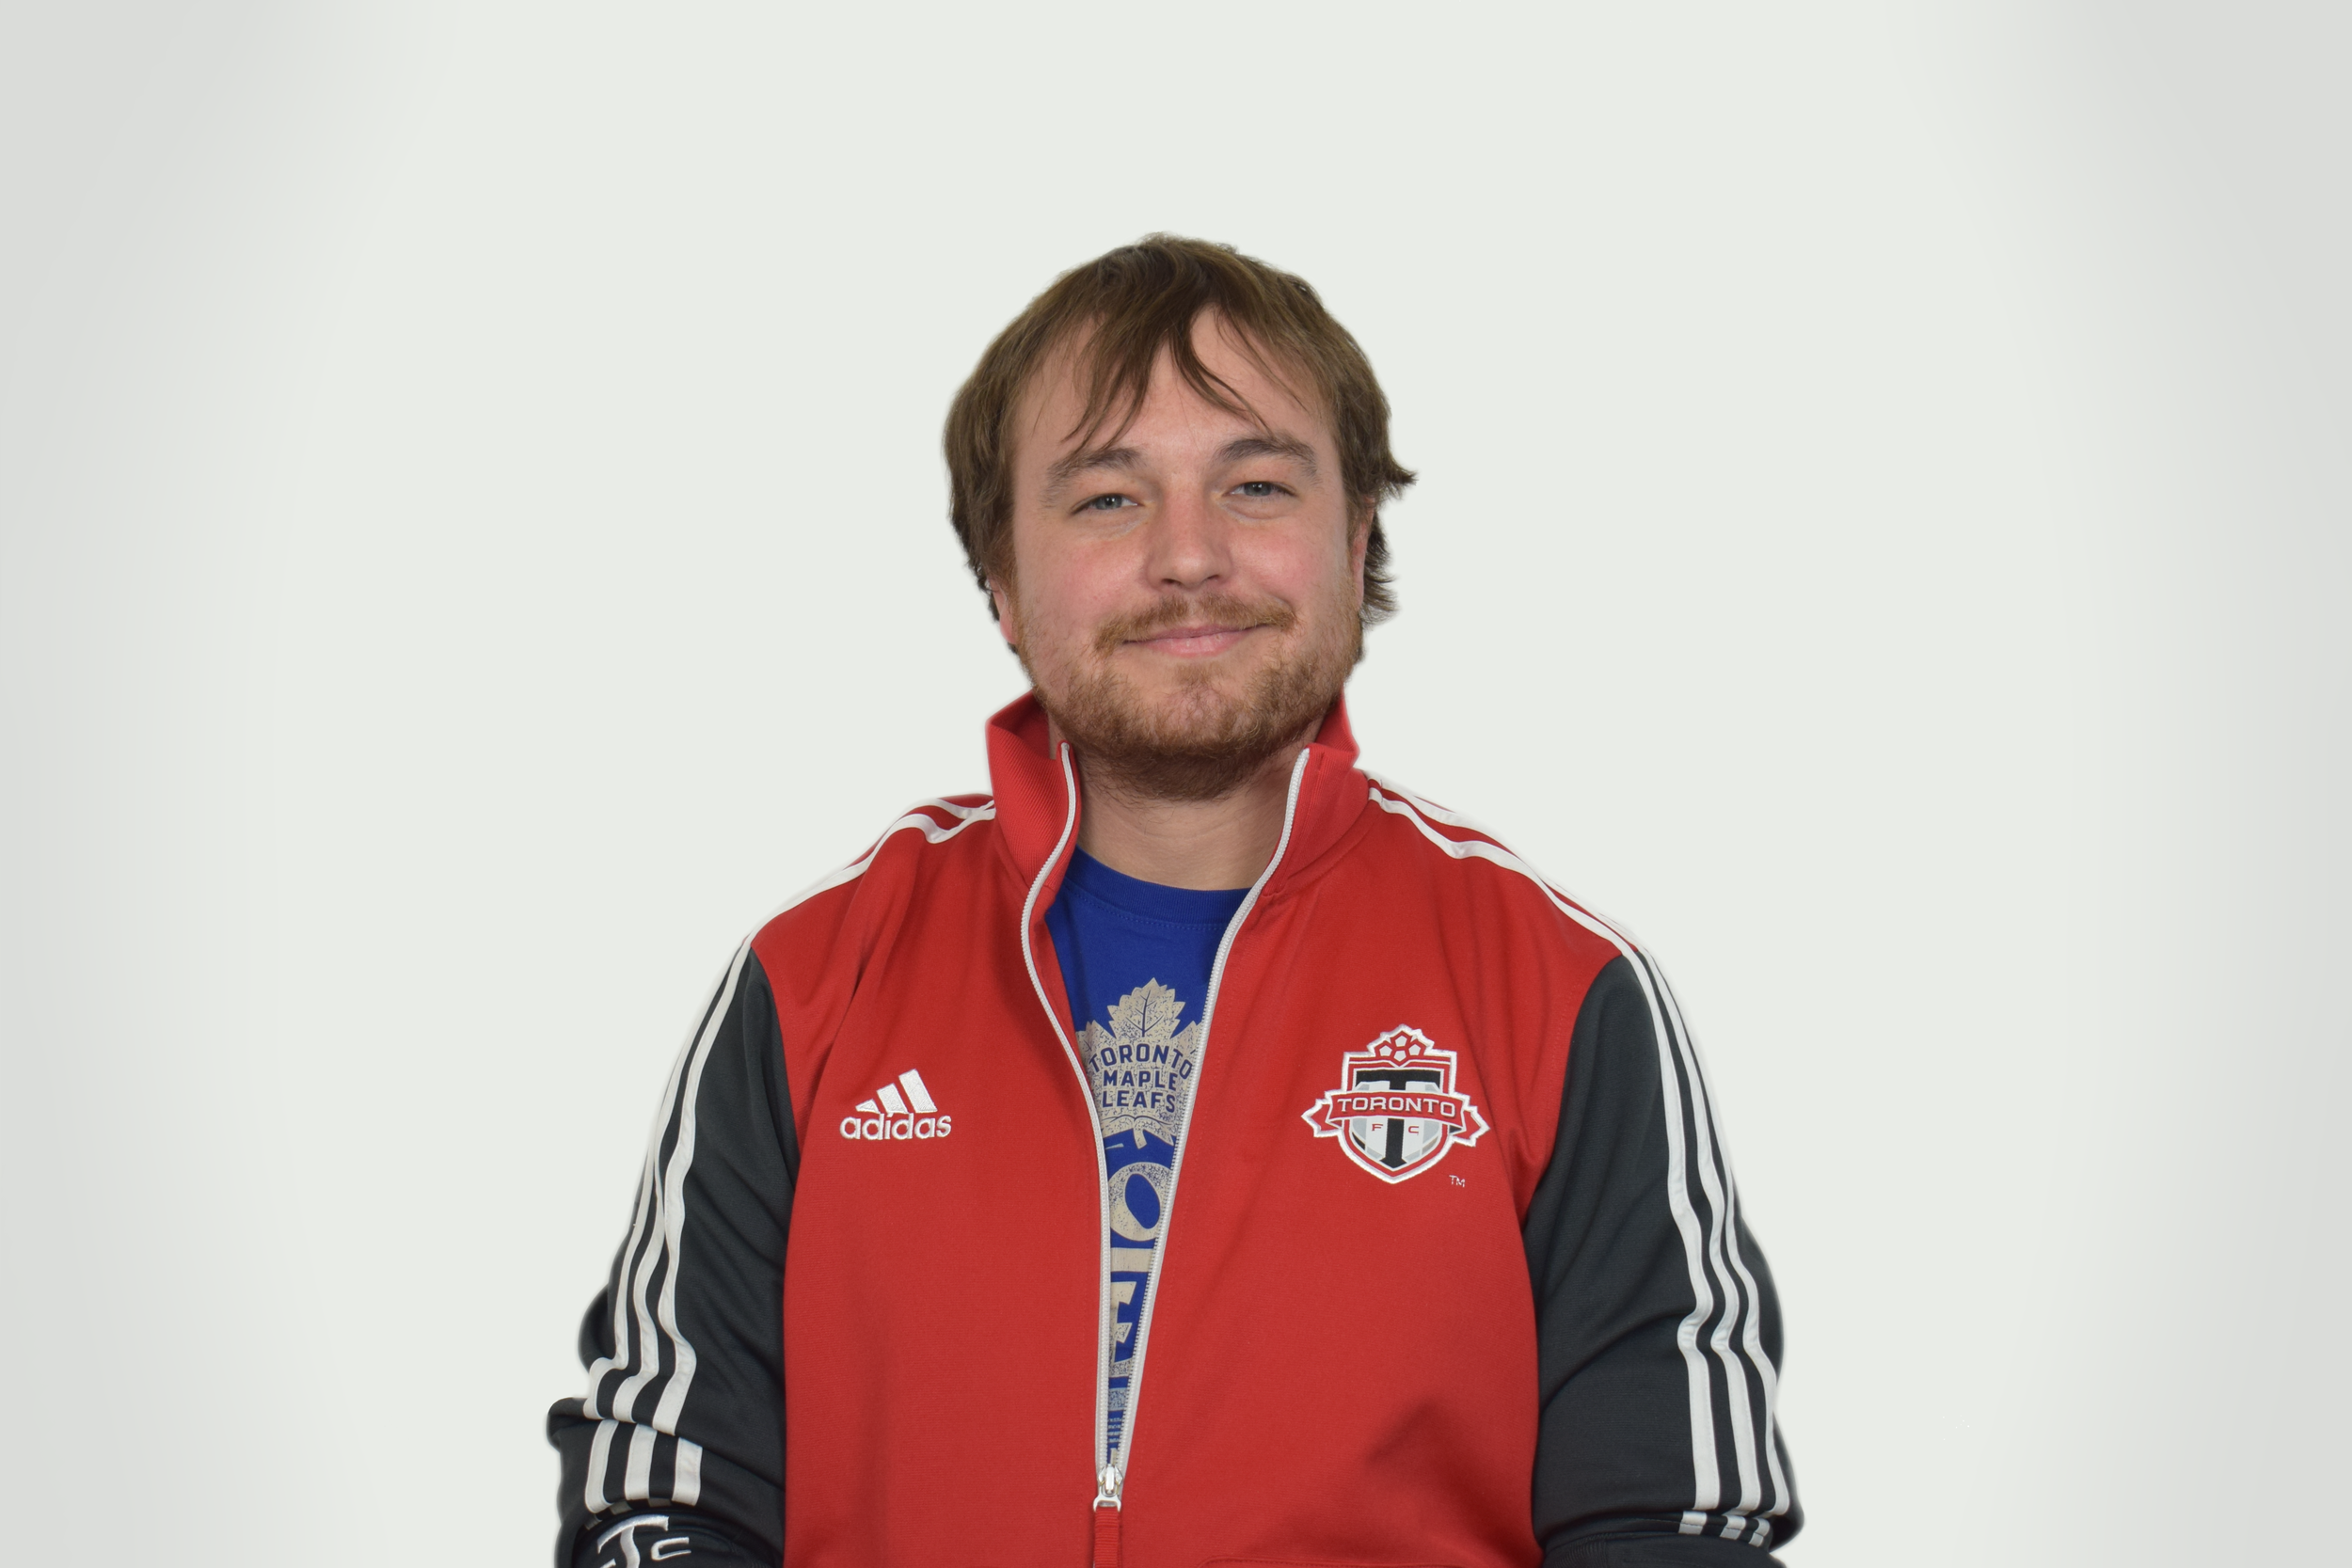 James Hardwick - Kijiji Tier Support -